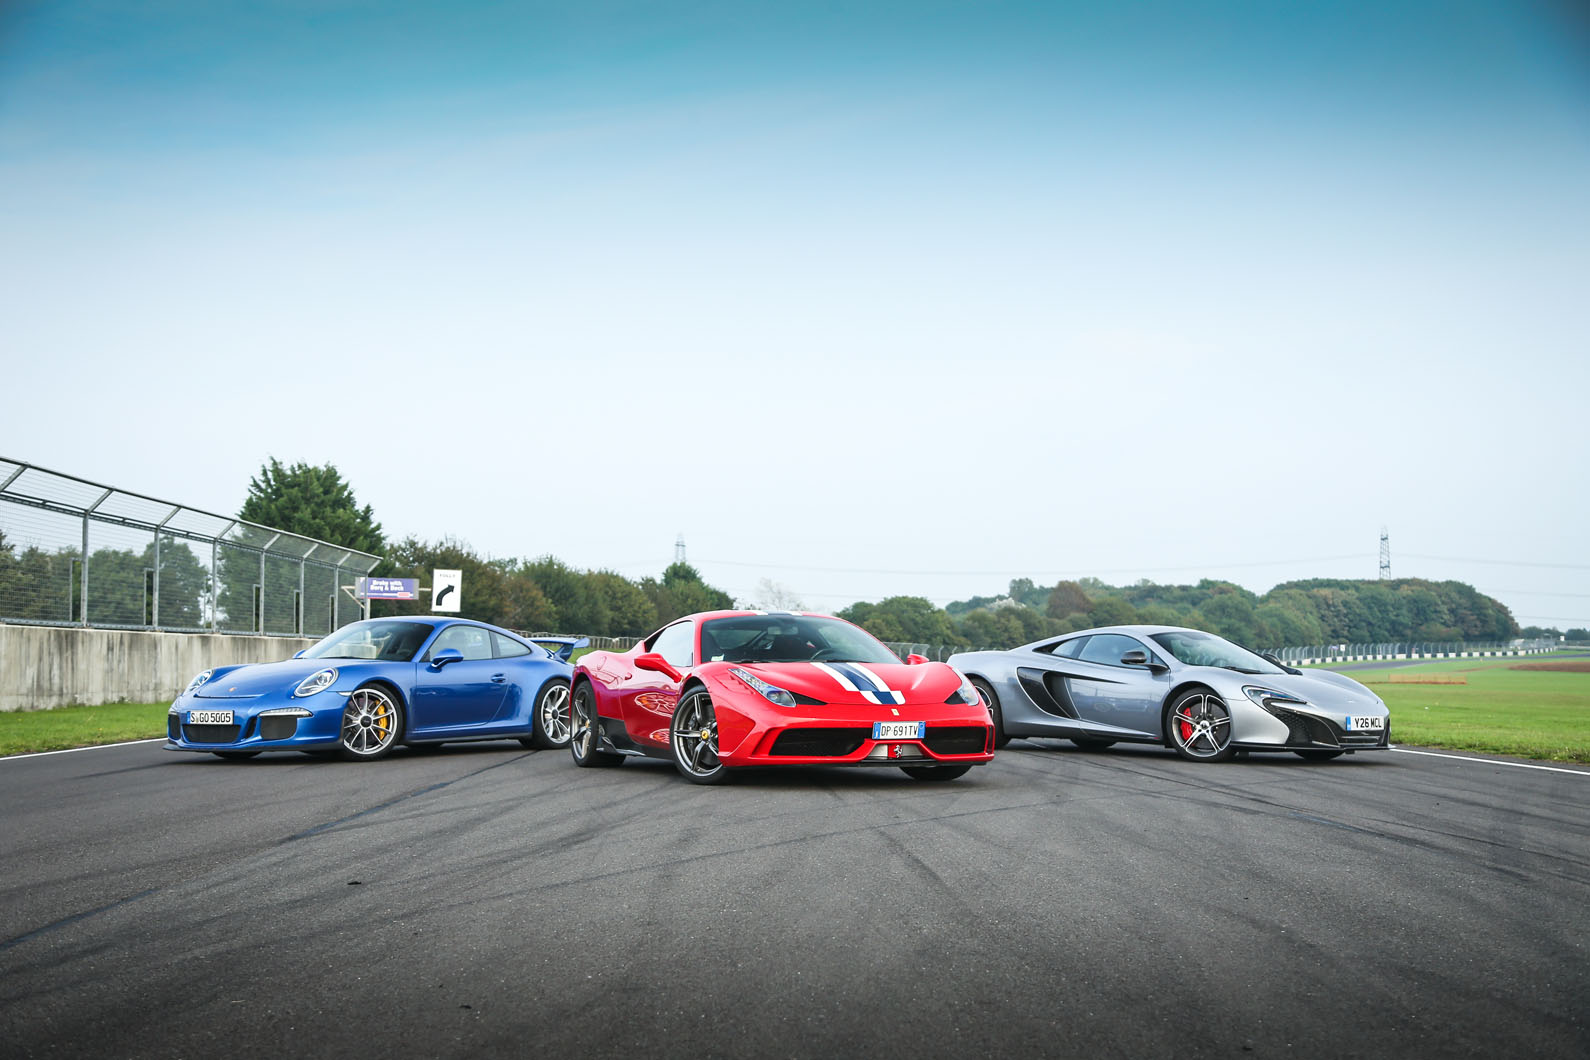 These three are sure to be at the business end of this year s contest ferrari s achingly brilliant 458 speciale versus mclaren sunfeasibly potent 650s